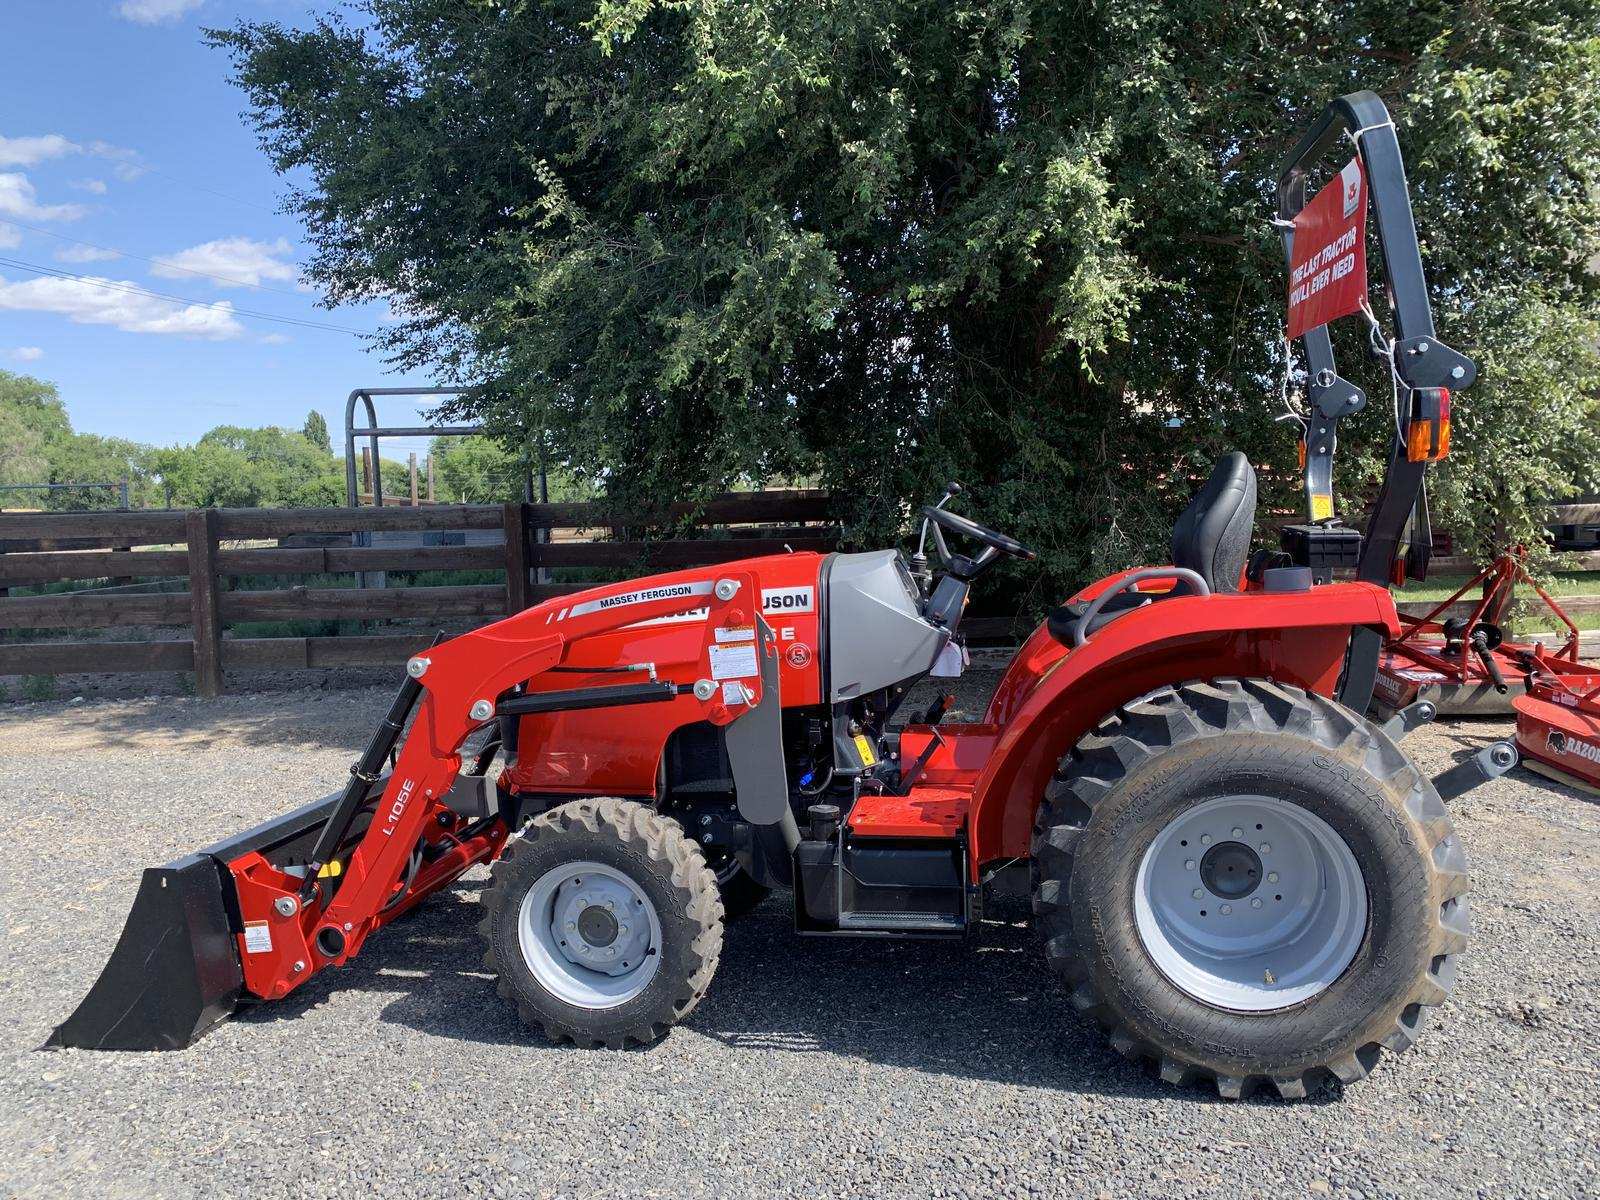 Inventory from Massey Ferguson Rathbone Sales Moses Lake, WA